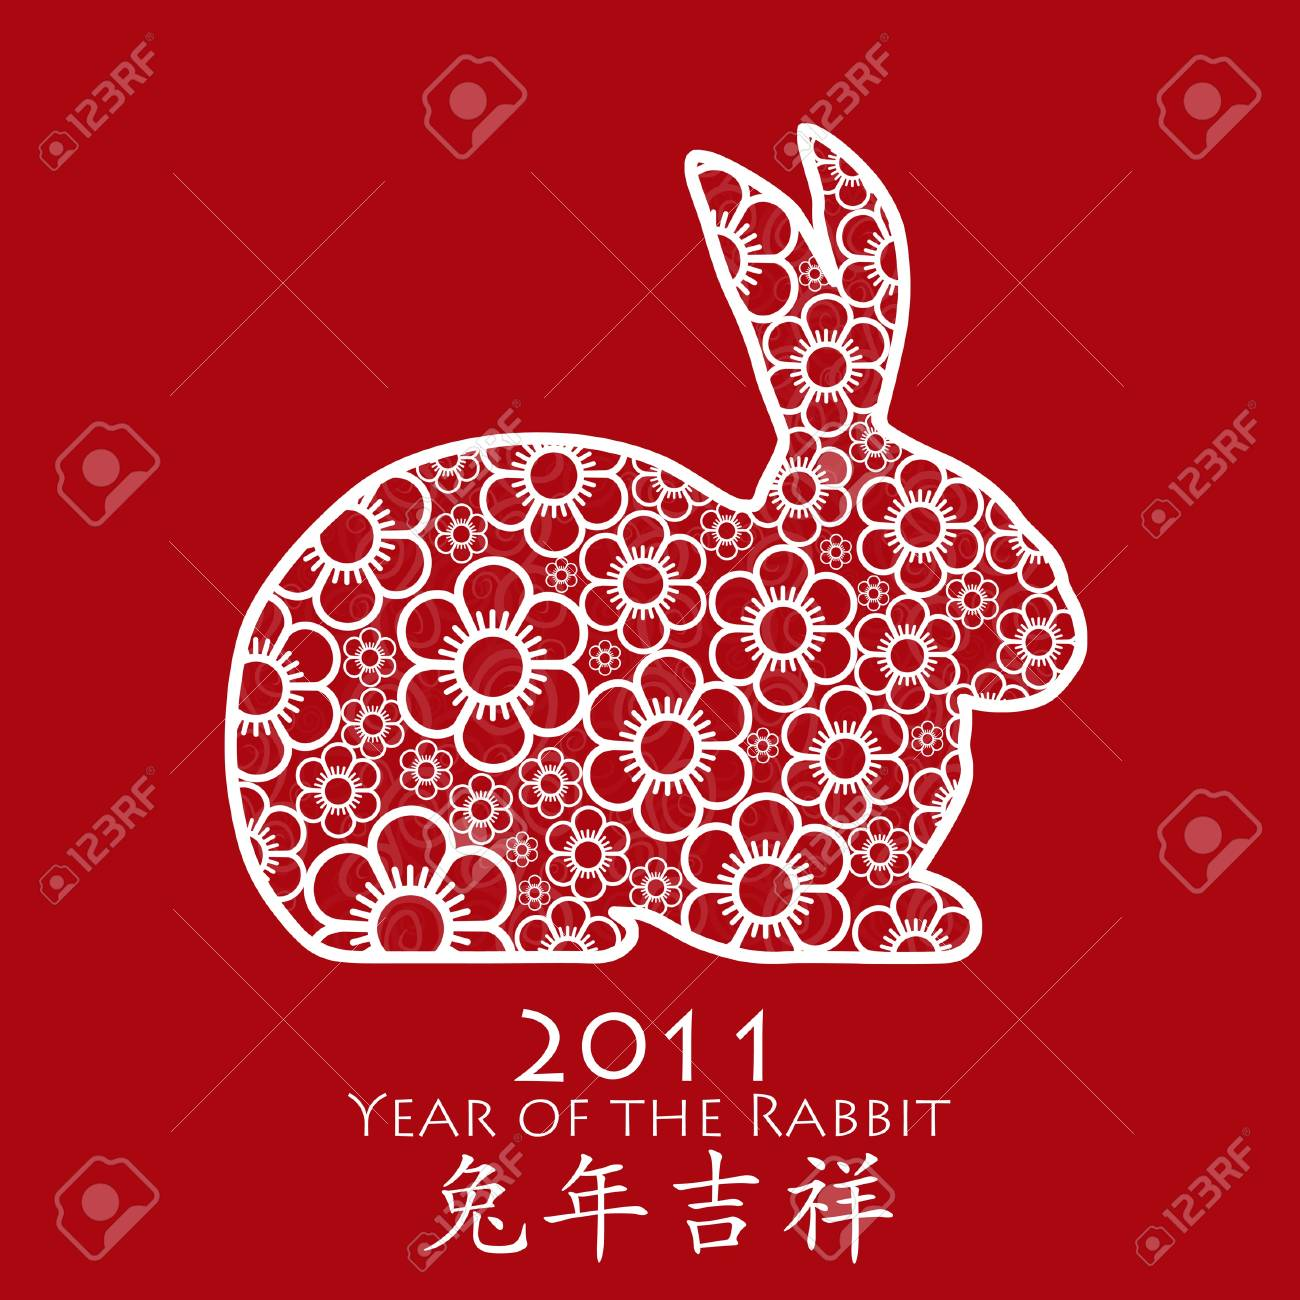 Year of the Rabbit 2011 with Chinese Cherry Blossom Spring Flower Red Illustration Stock Illustration - 8639612